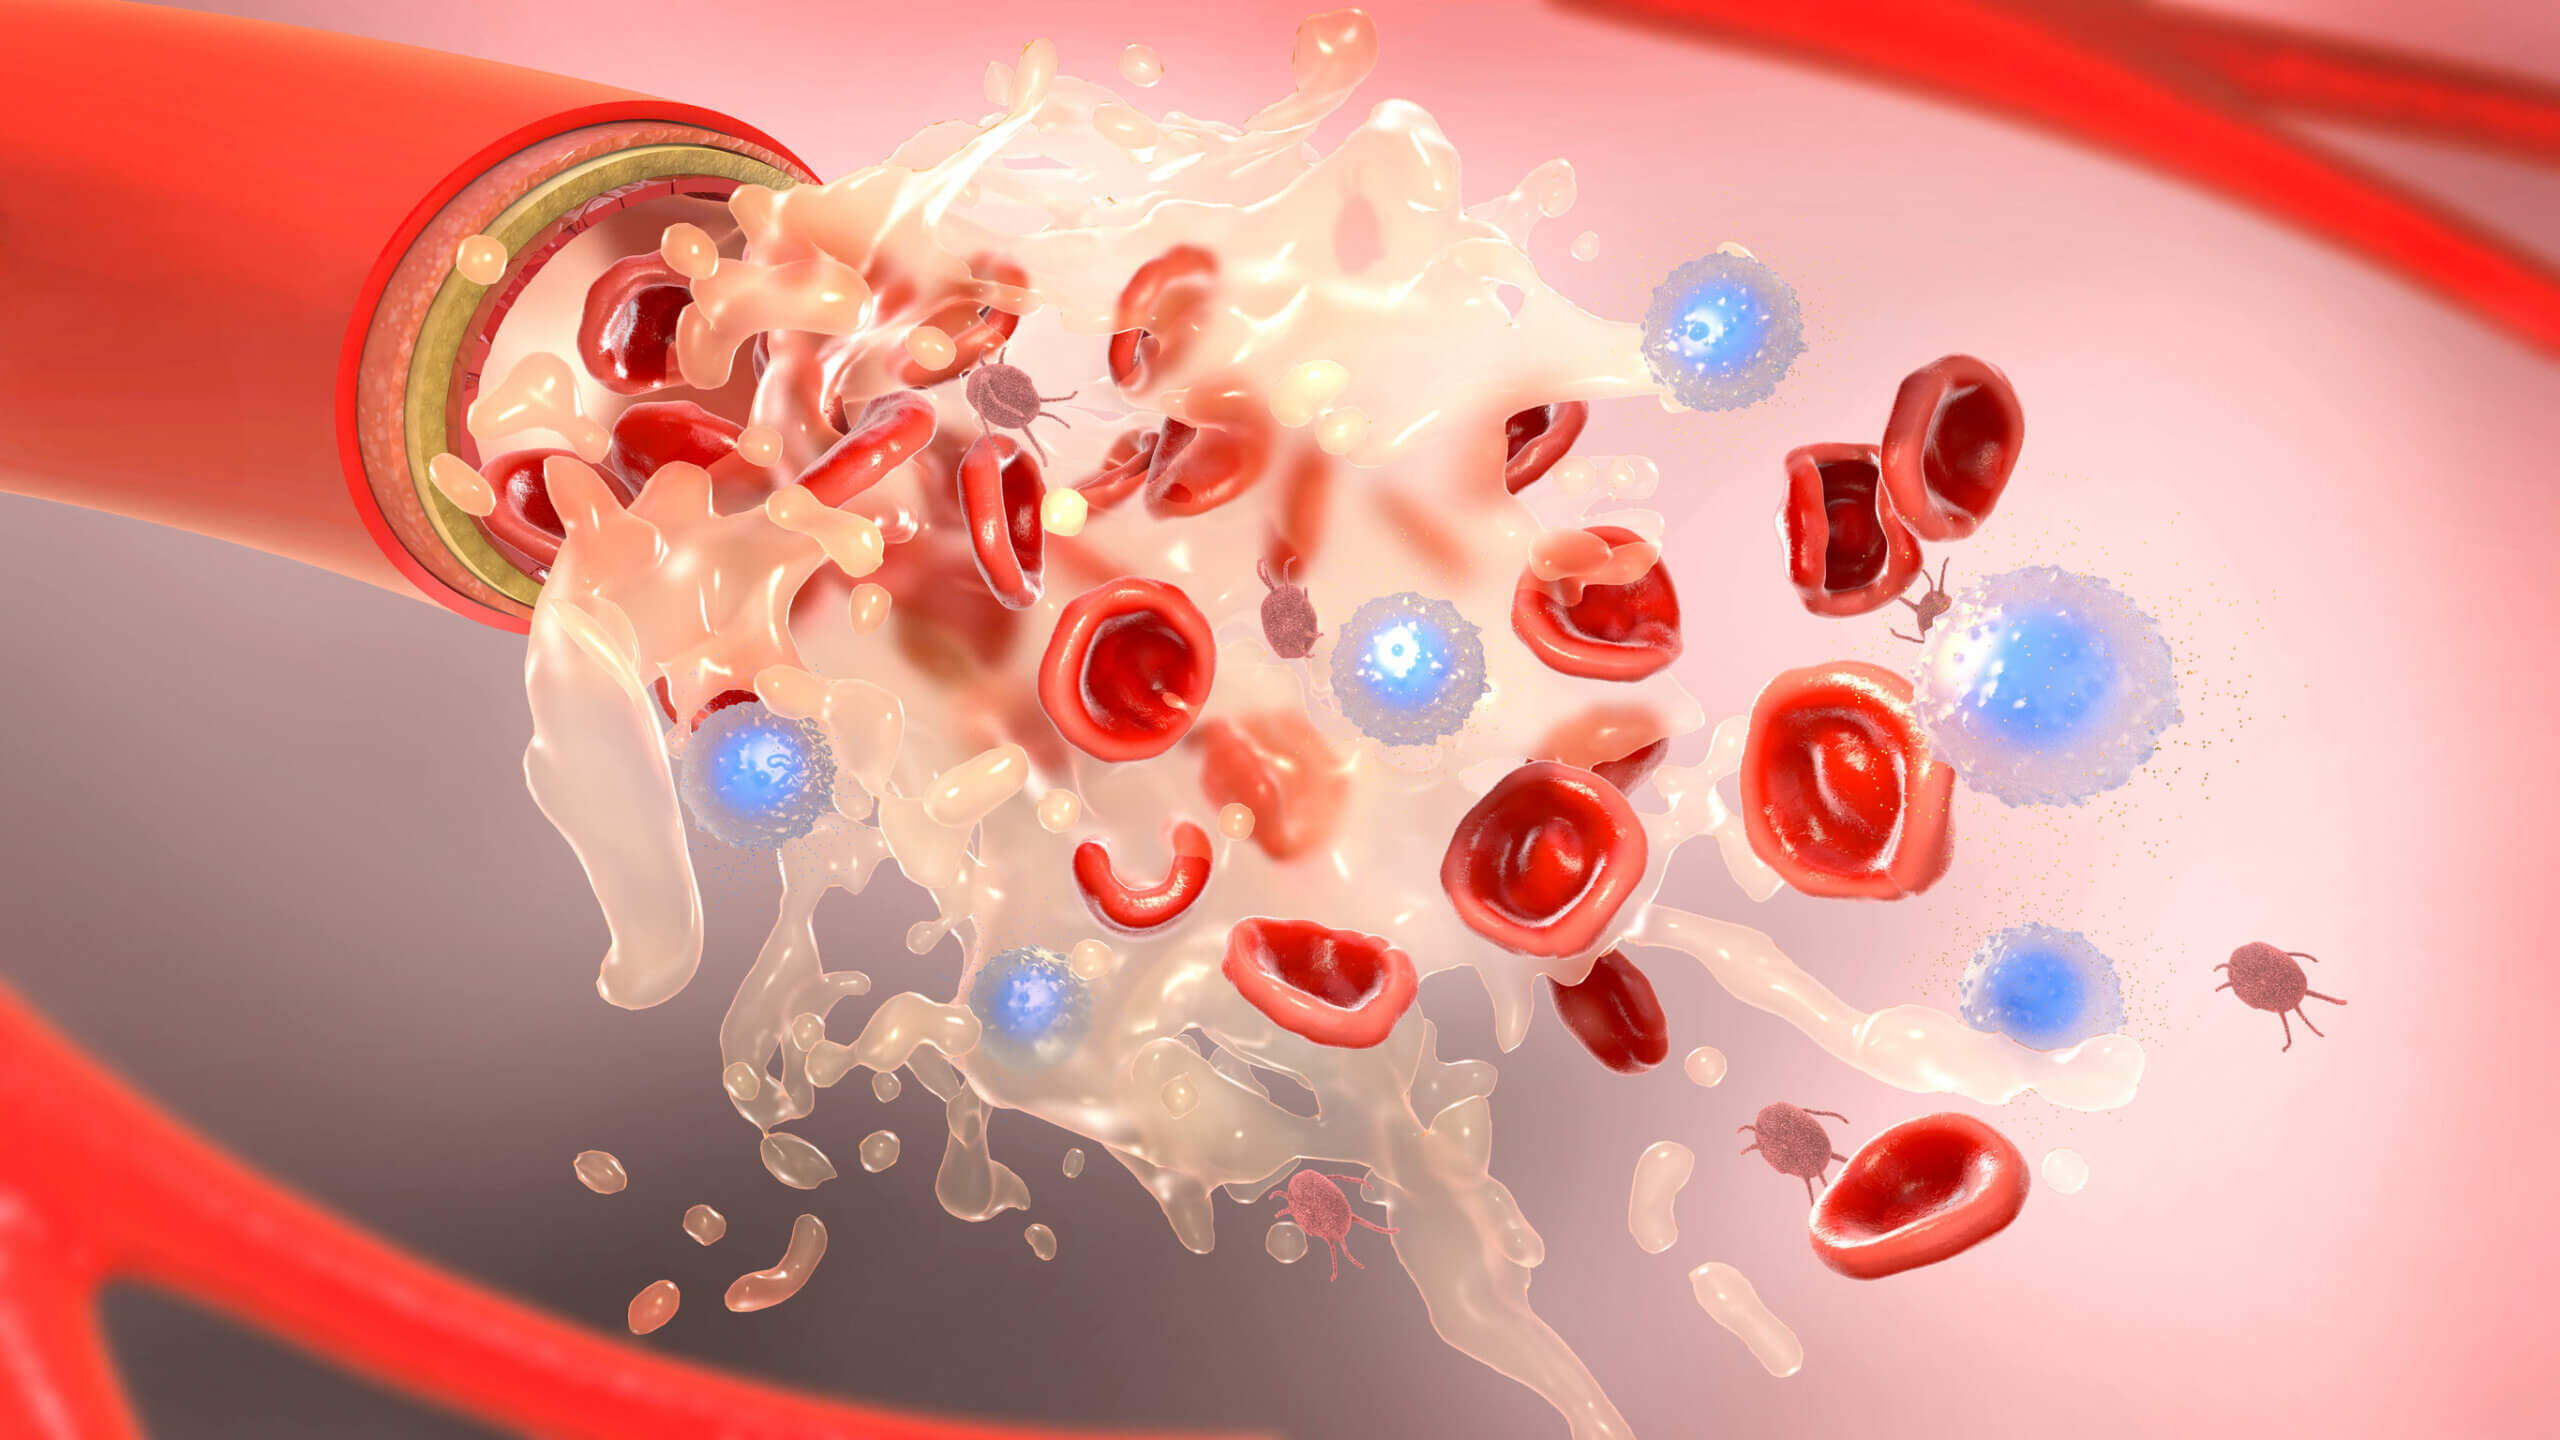 Platelet measurement is an essential part of the blood test.